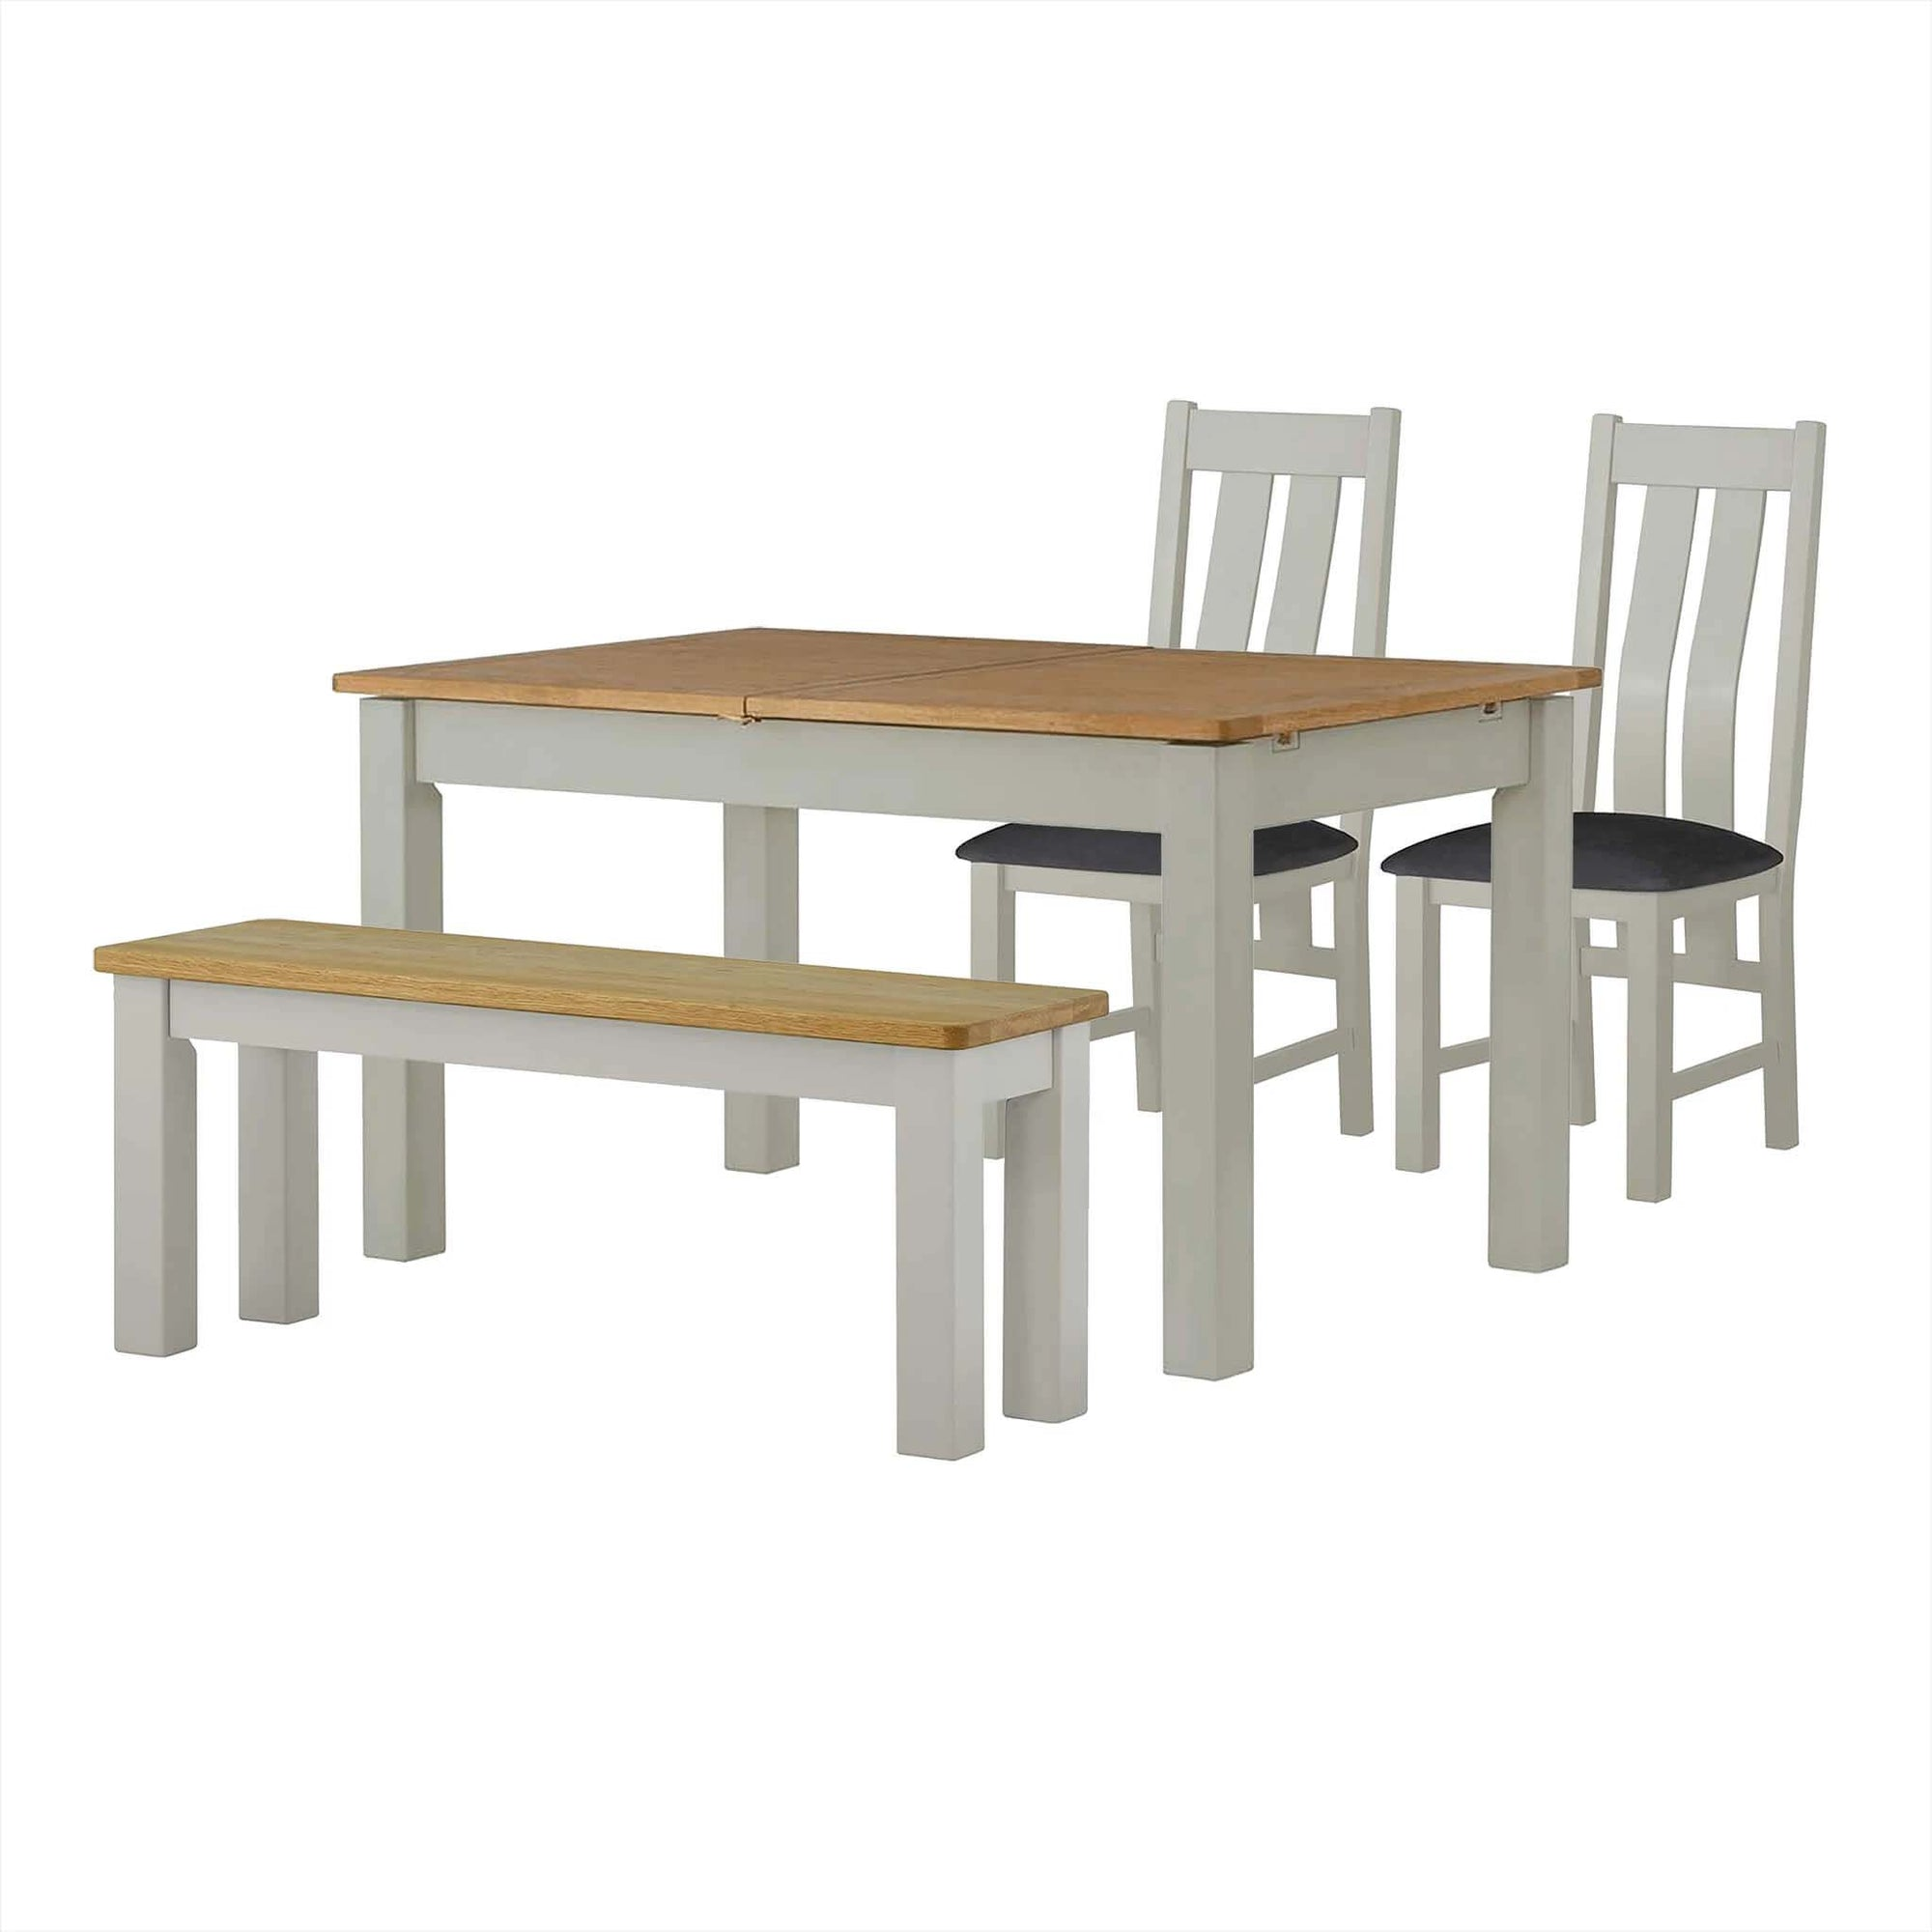 The Padstow Grey Wooden Extending Dining Table with Bench and Dining Chairs from Roseland Furniture